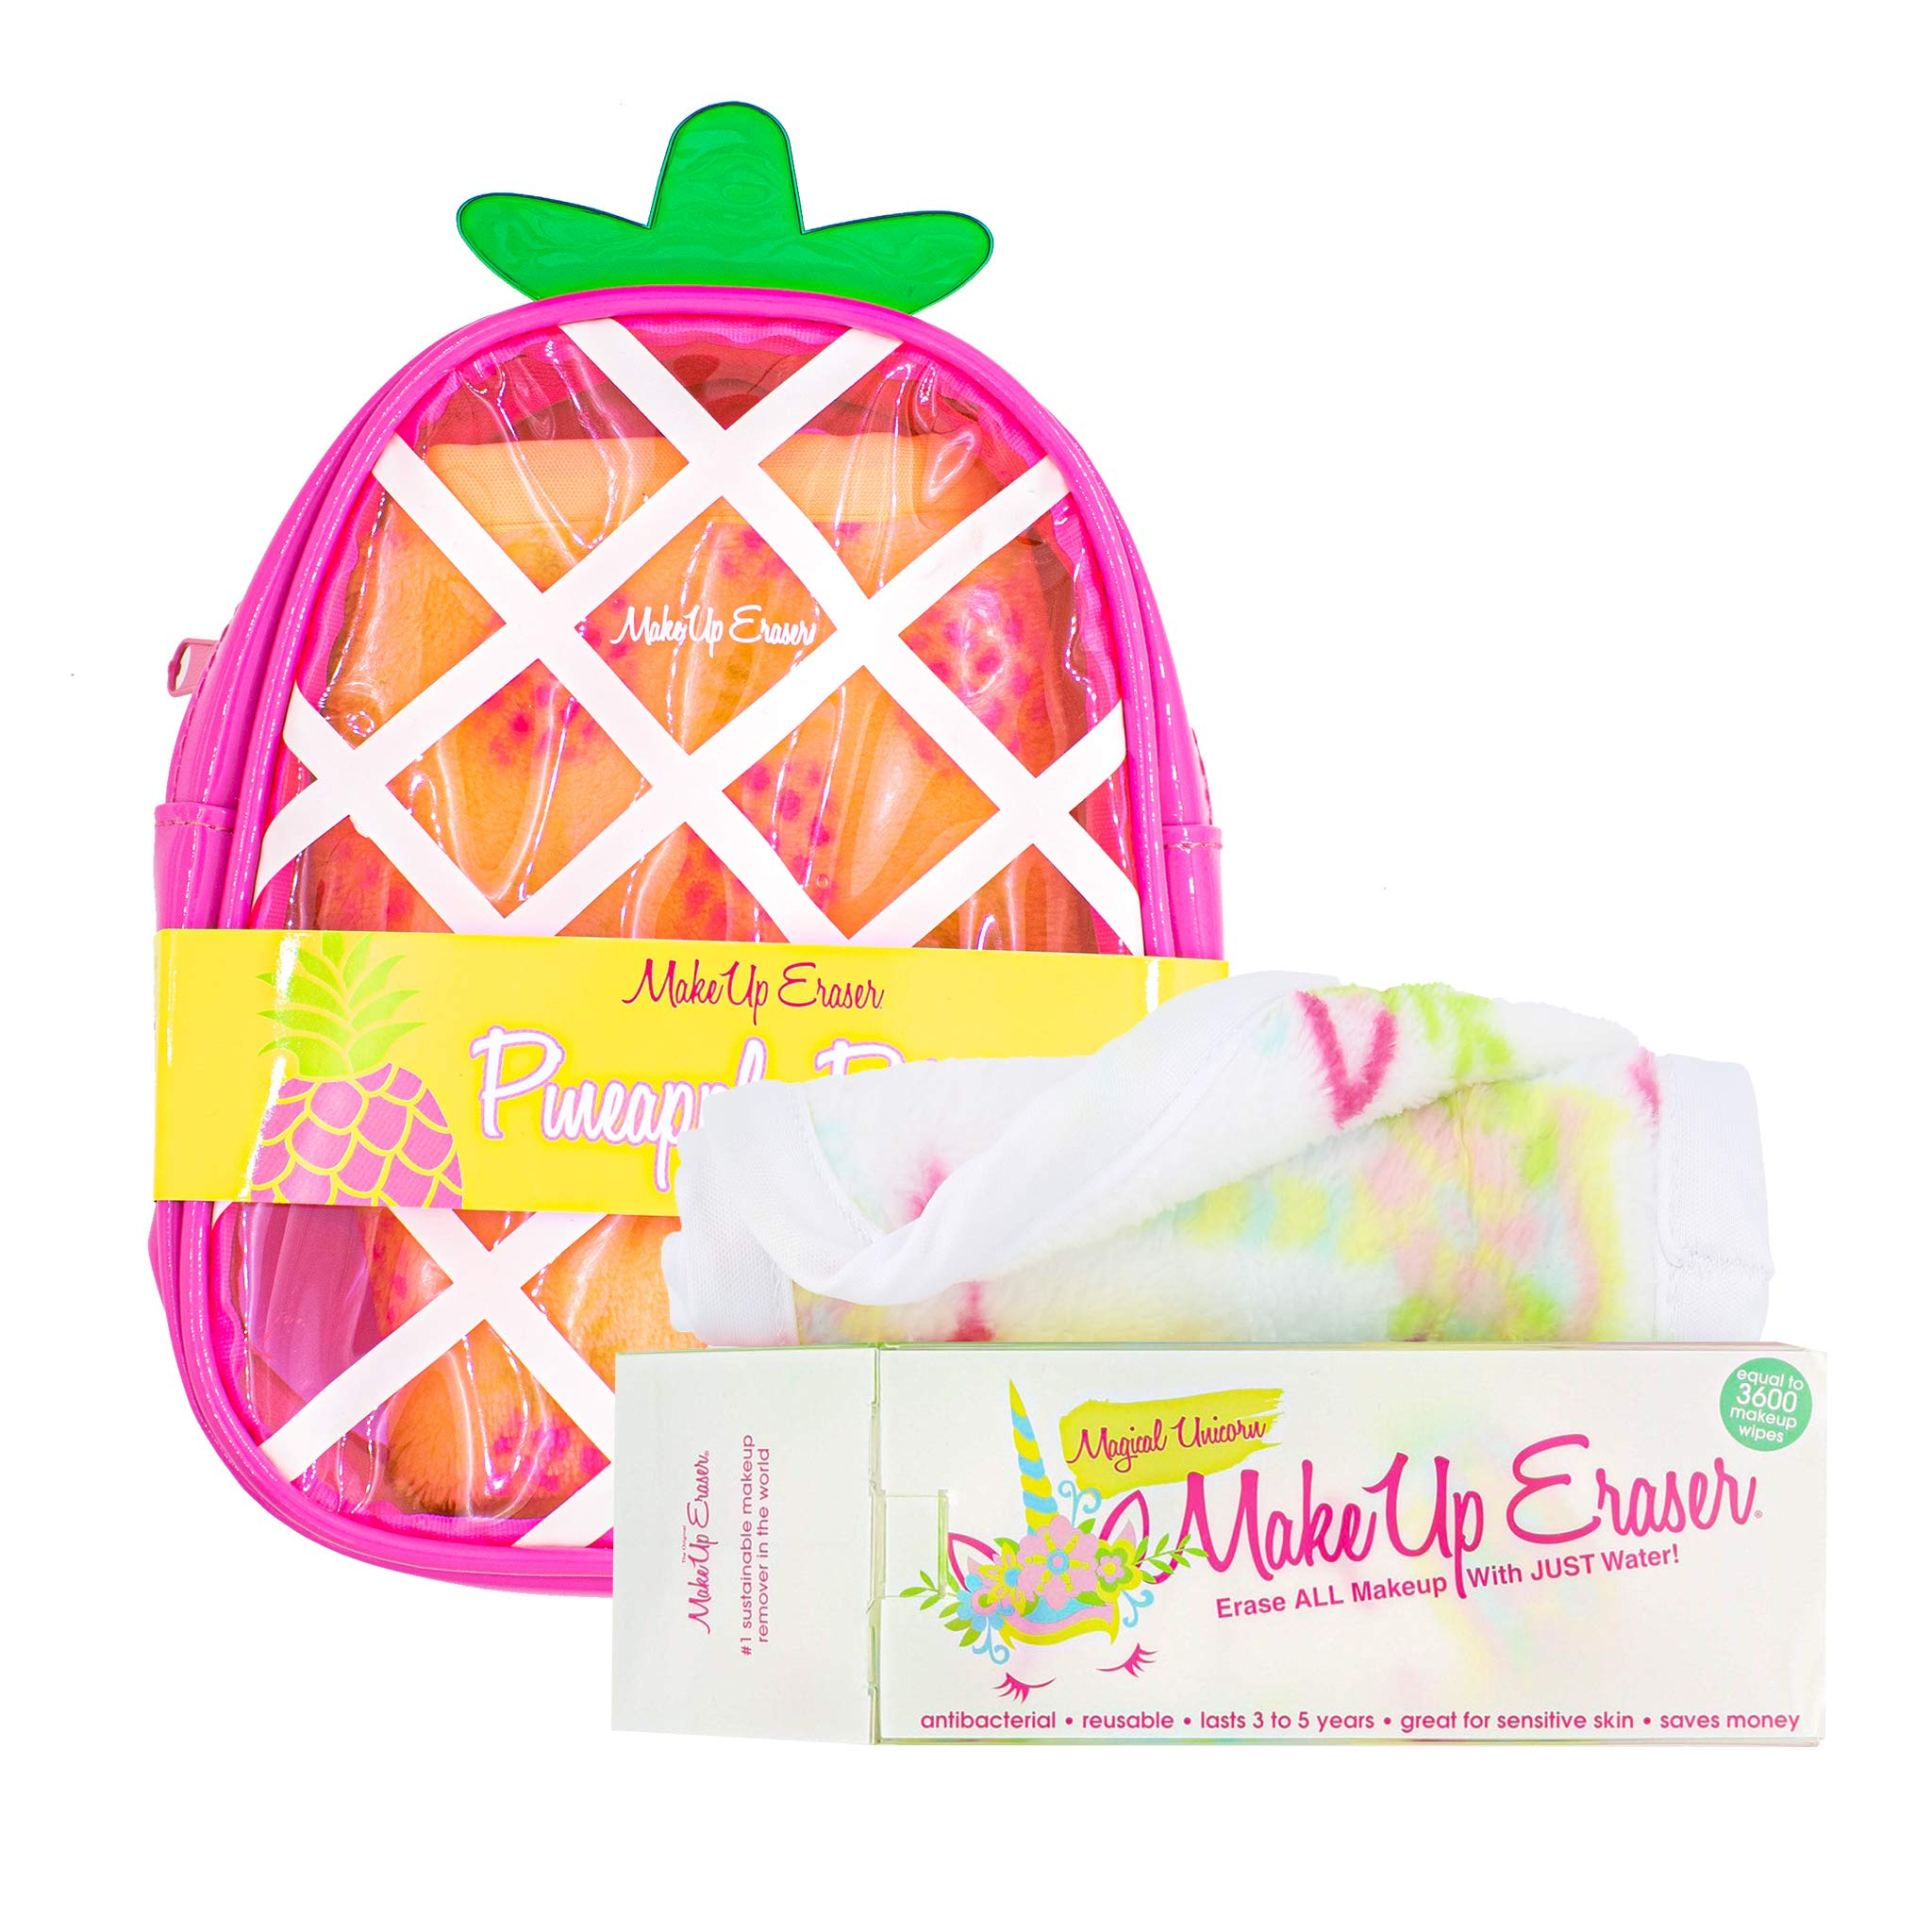 MakeUp Eraser Bundle, Unicorn & Pineapple. by Makeup Eraser